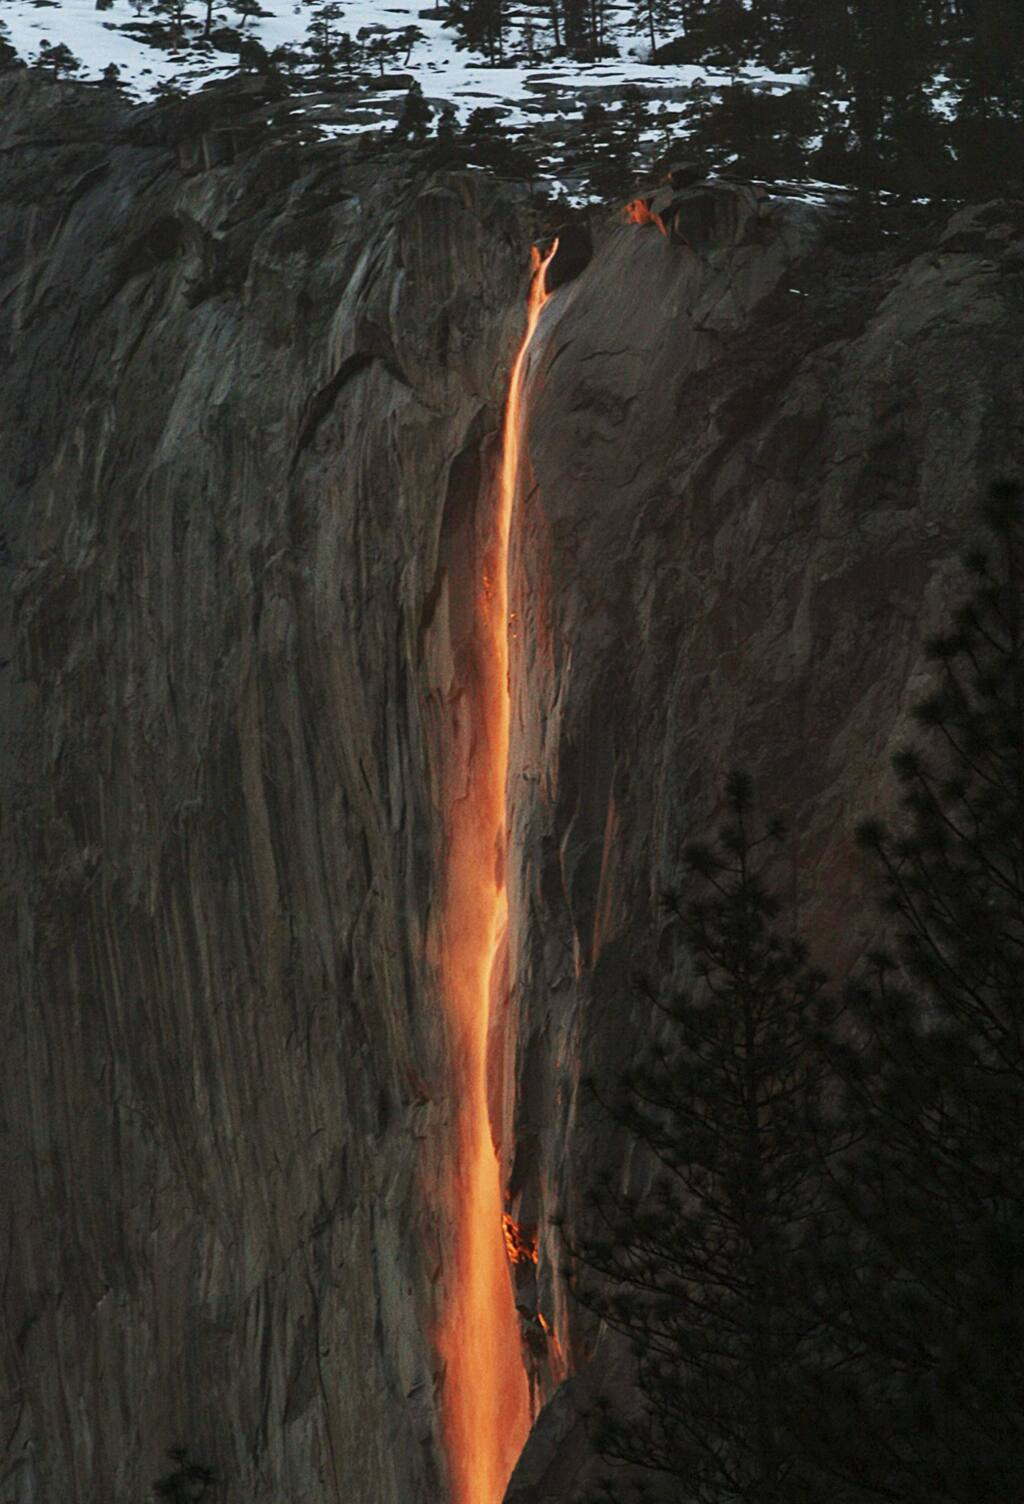 FILE - In this Feb. 16, 2010, file photo, a shaft of sunlight creates a glow near Horsetail Fall, in Yosemite National Park, Calif. Adventurers hoping to see Yosemite National Park's annual 'firefall' will need reservations. At least 50 permits will be issued for each day between Feb. 12 and Feb. 26. The annual event is known to attract over 1,000 sightseers a year. (Eric Paul Zamora/The Fresno Bee via AP, File)